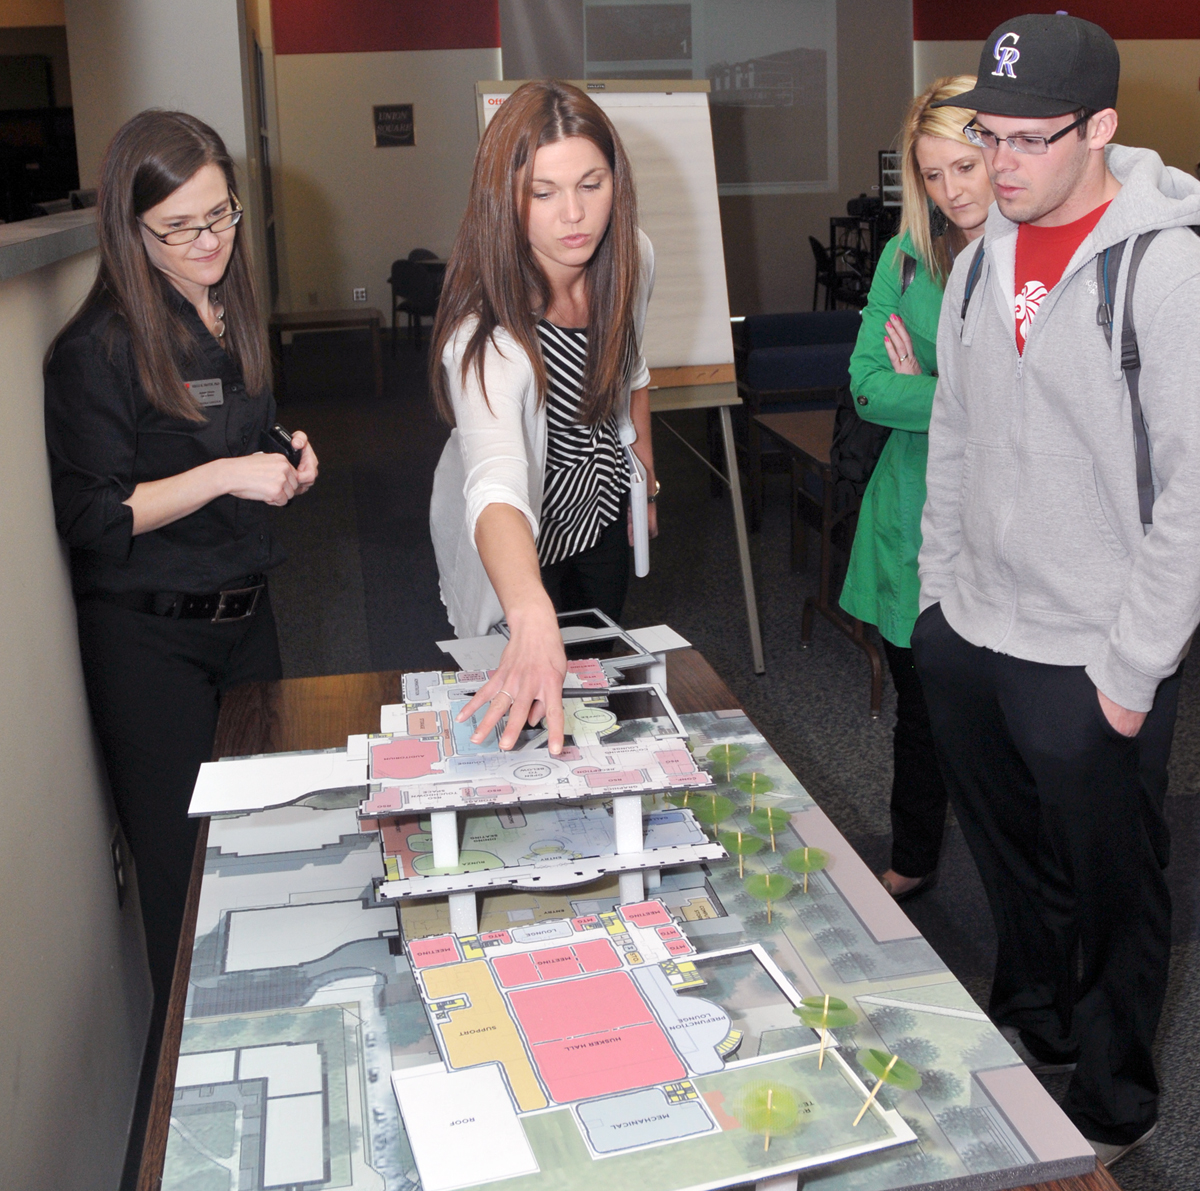 A representative of Workshop Architects discusses the Nebraska Union renovation plan with students and staff during an April 16 open forum. A refined version of the plan will be presented on May 29.